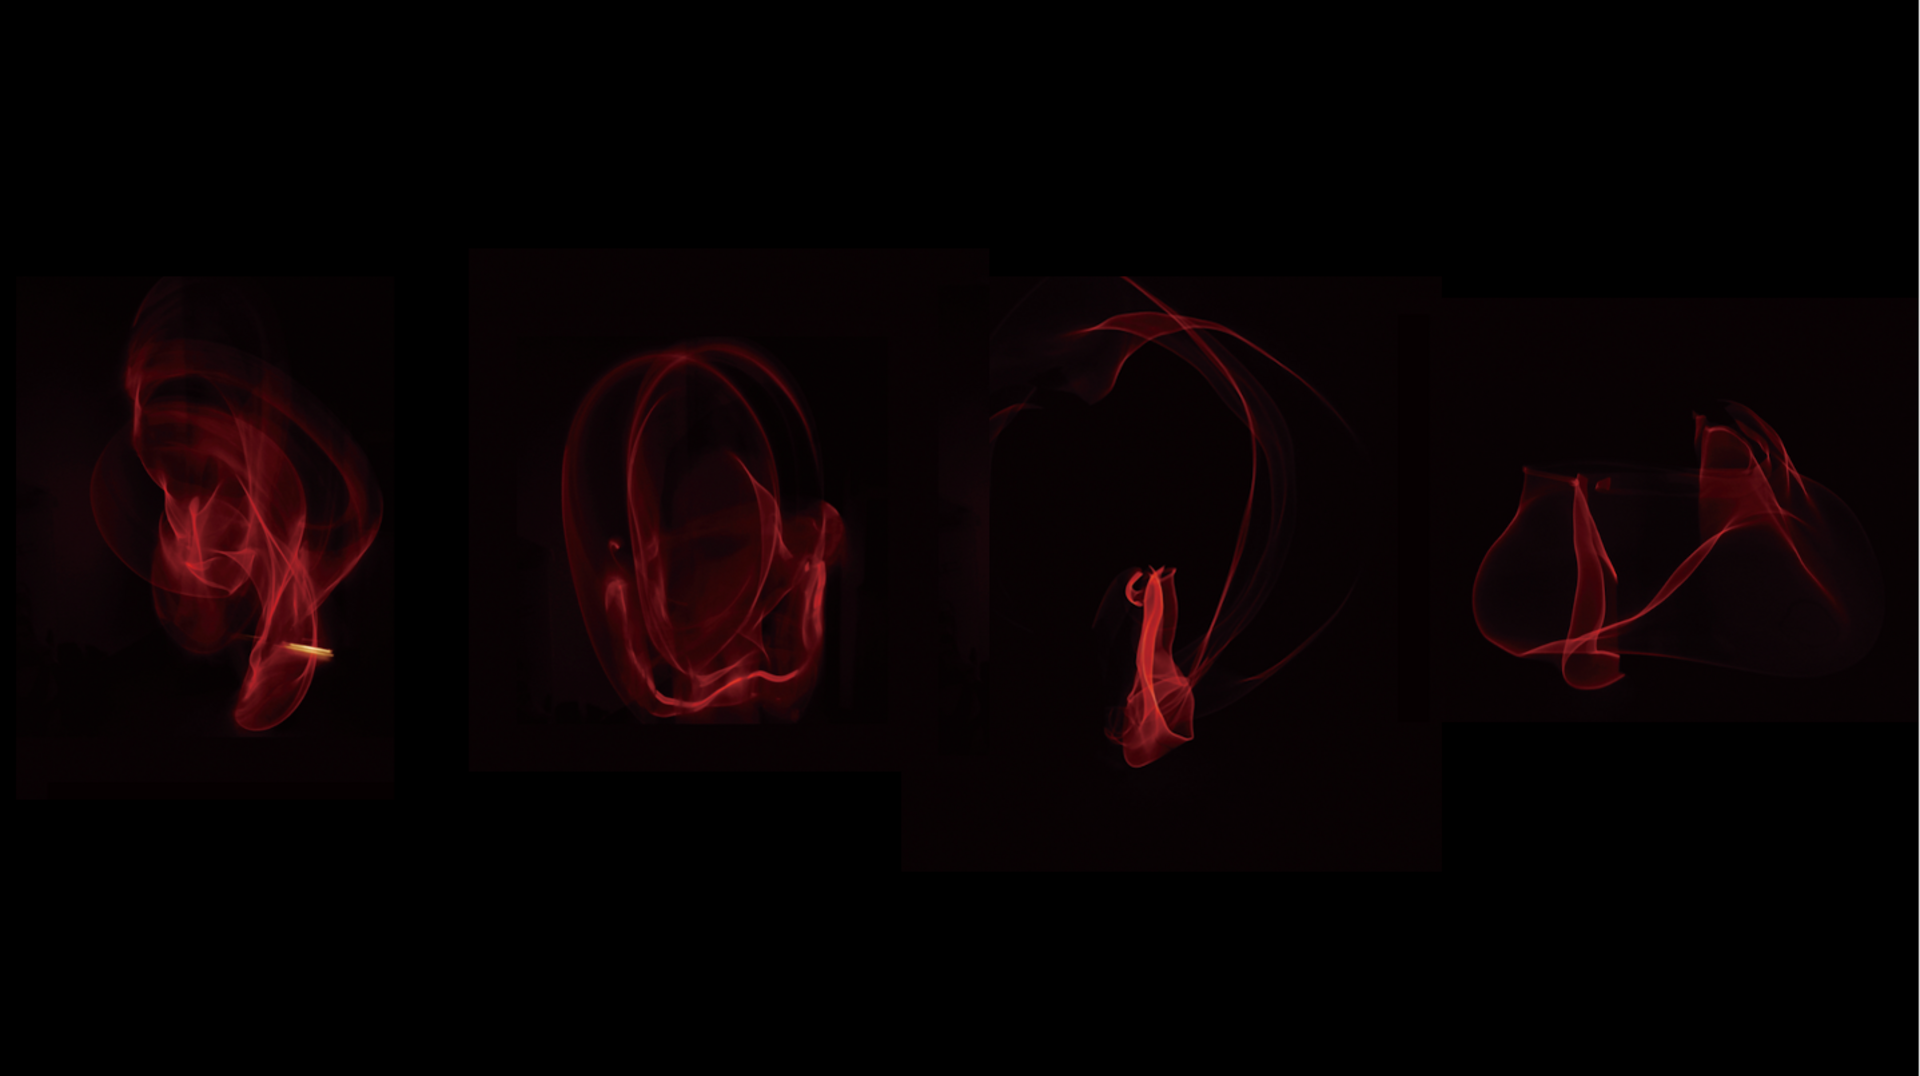 -RED LINE TIME LAPSE SERIES-